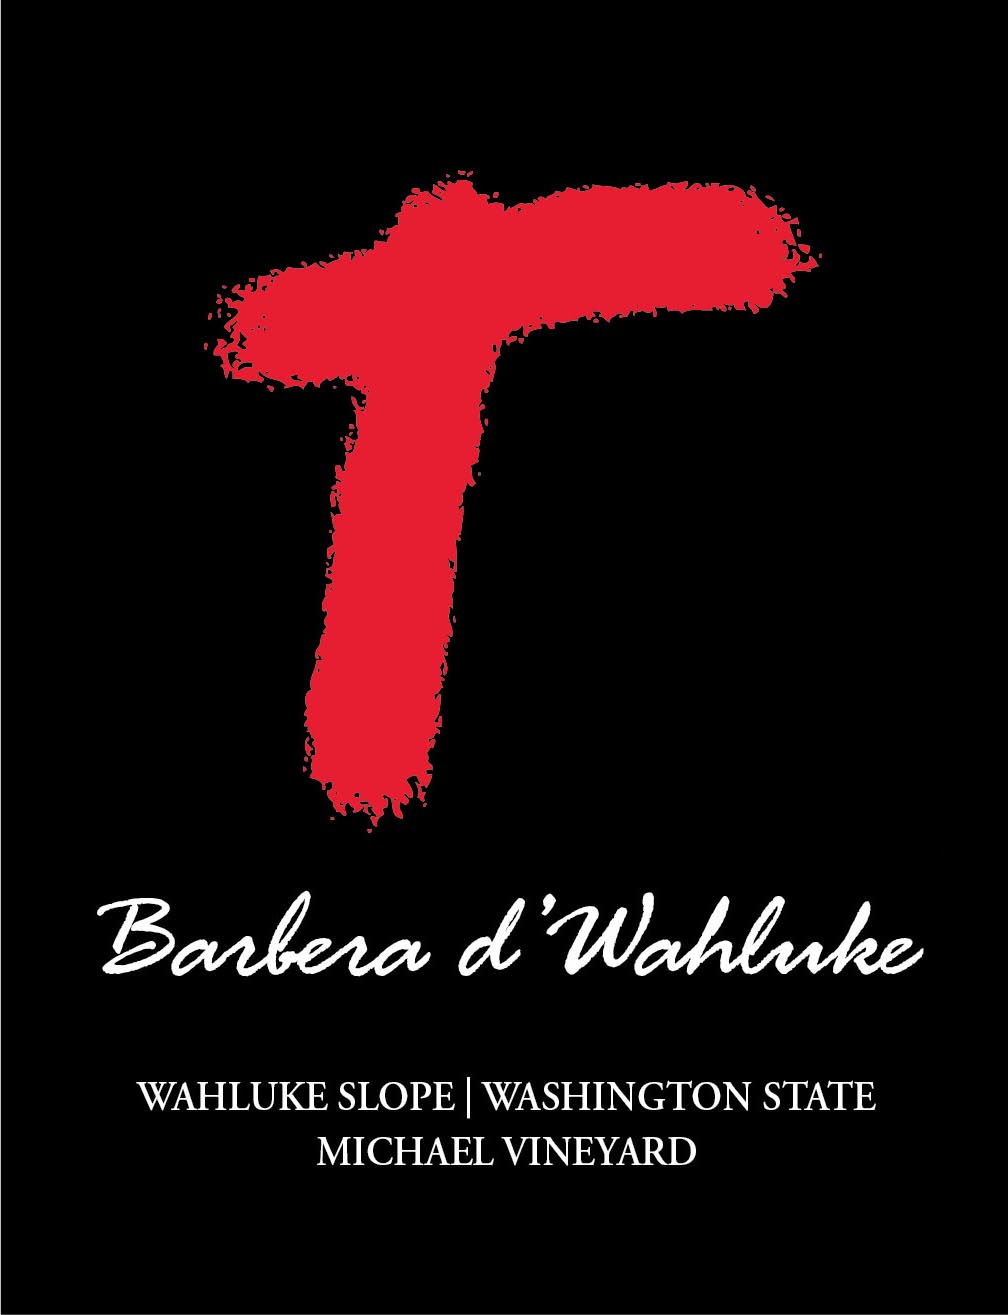 2016 Barbera d'Wahluke MAIN